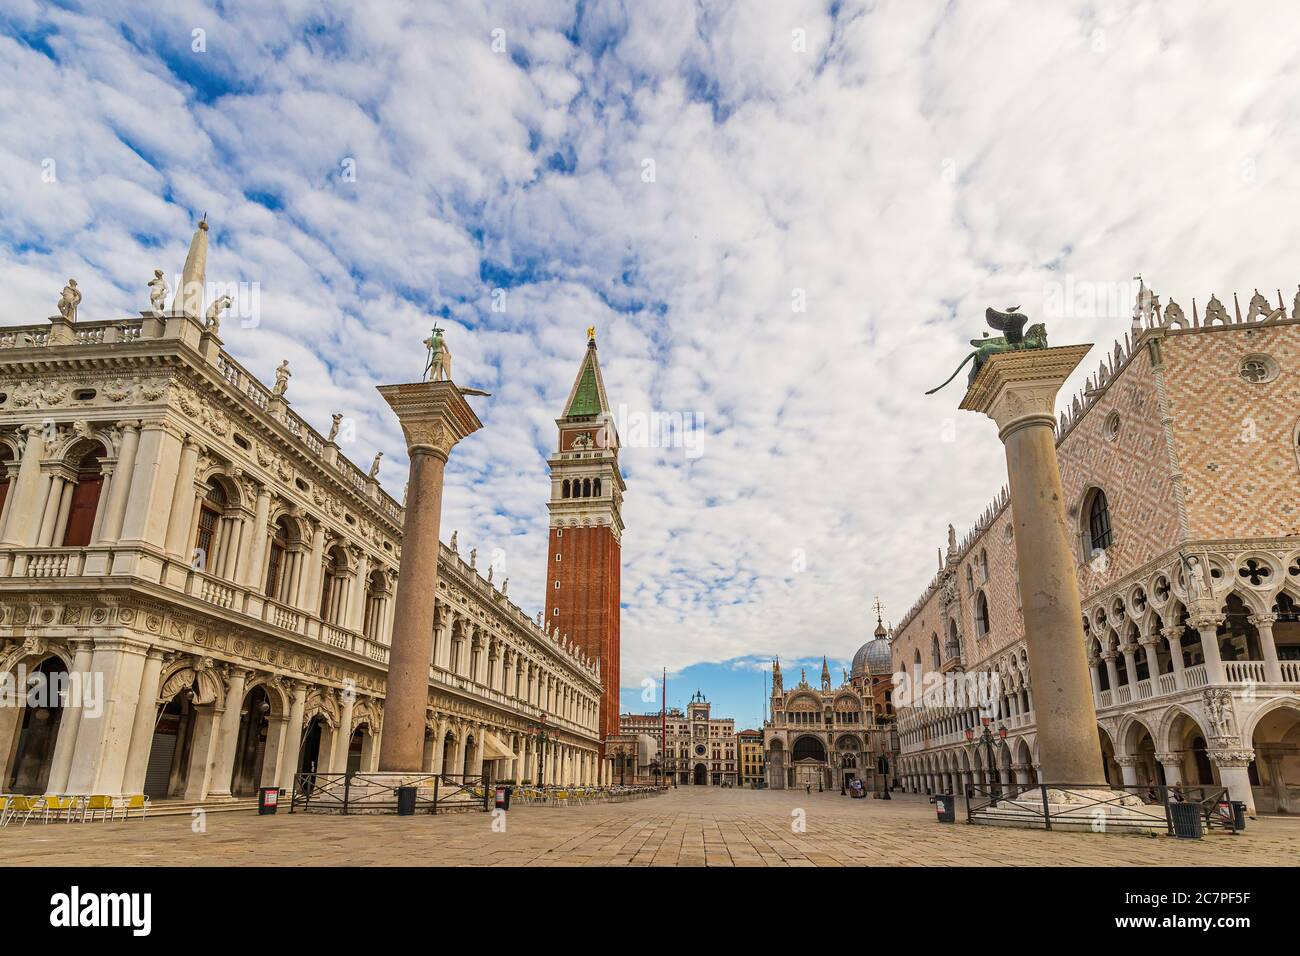 A view of the Campanile at St Mark's Square in Venice, Italy Stock Photo